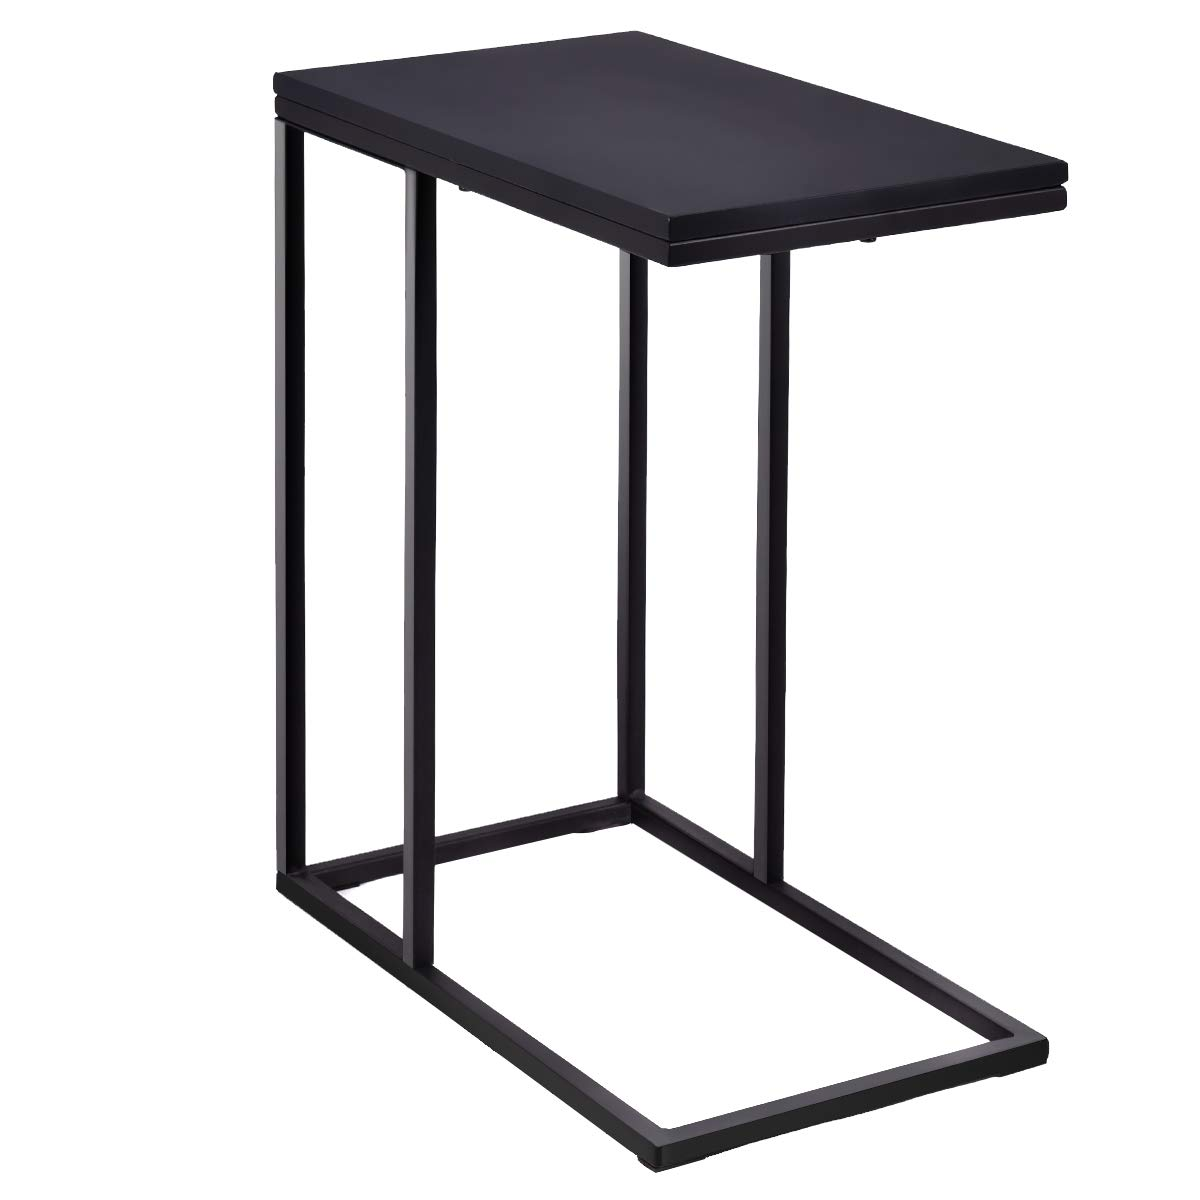 Rebuild Ikea Bar Table Decoration Amazon.com: Tangkula Coffee Tray Sofa Side End Table Ottoman Couch Console  Stand TV Lap Snack, Black: Kitchen u0026 Dining